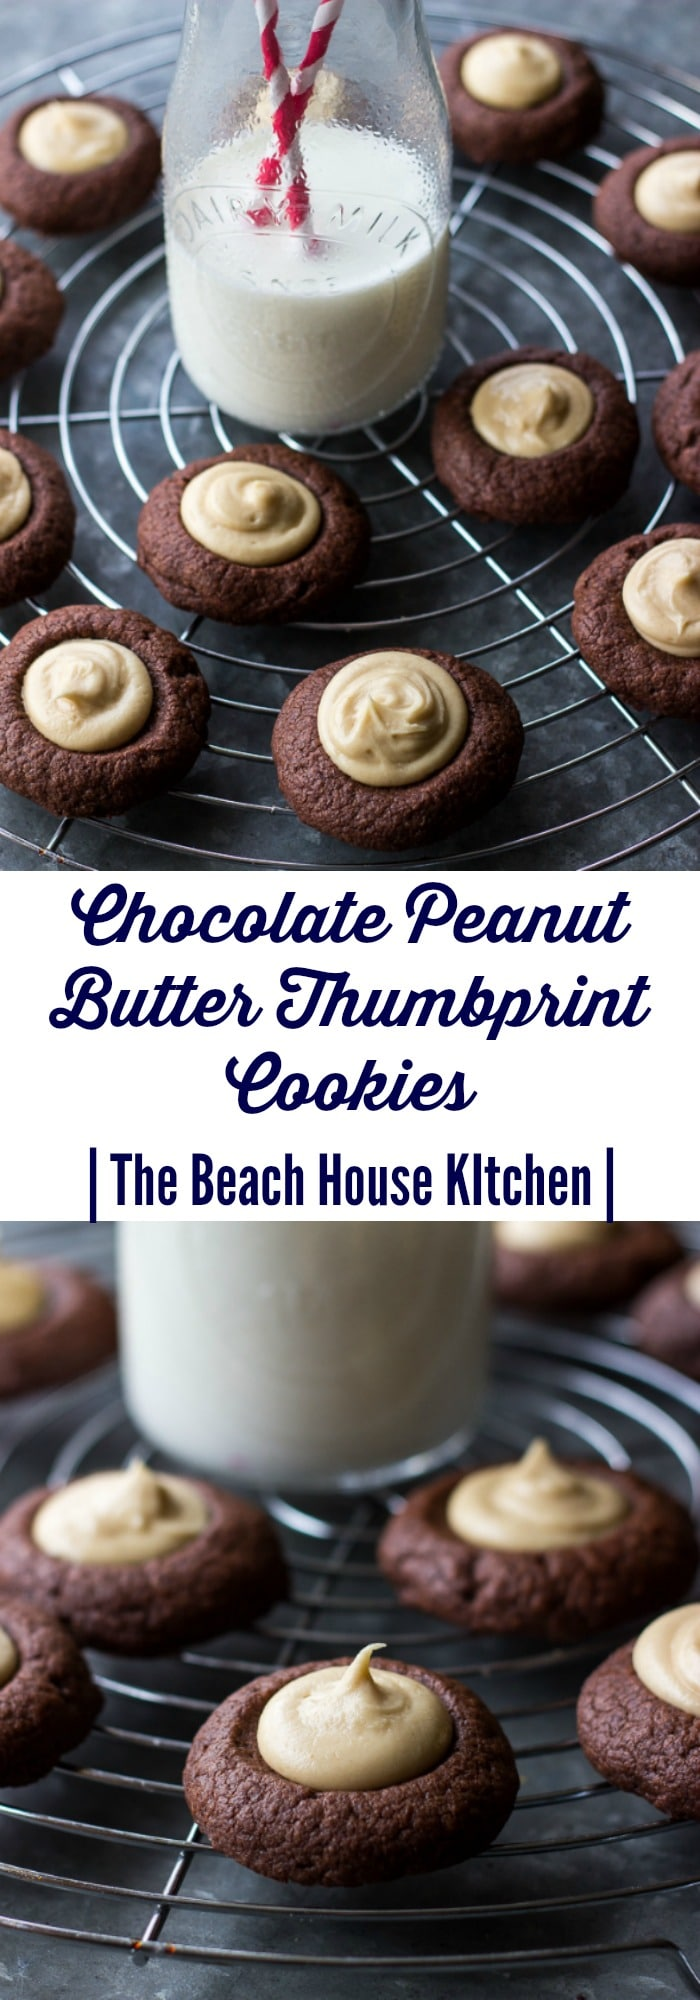 Chocolate Peanut ButterThumbprint Cookies